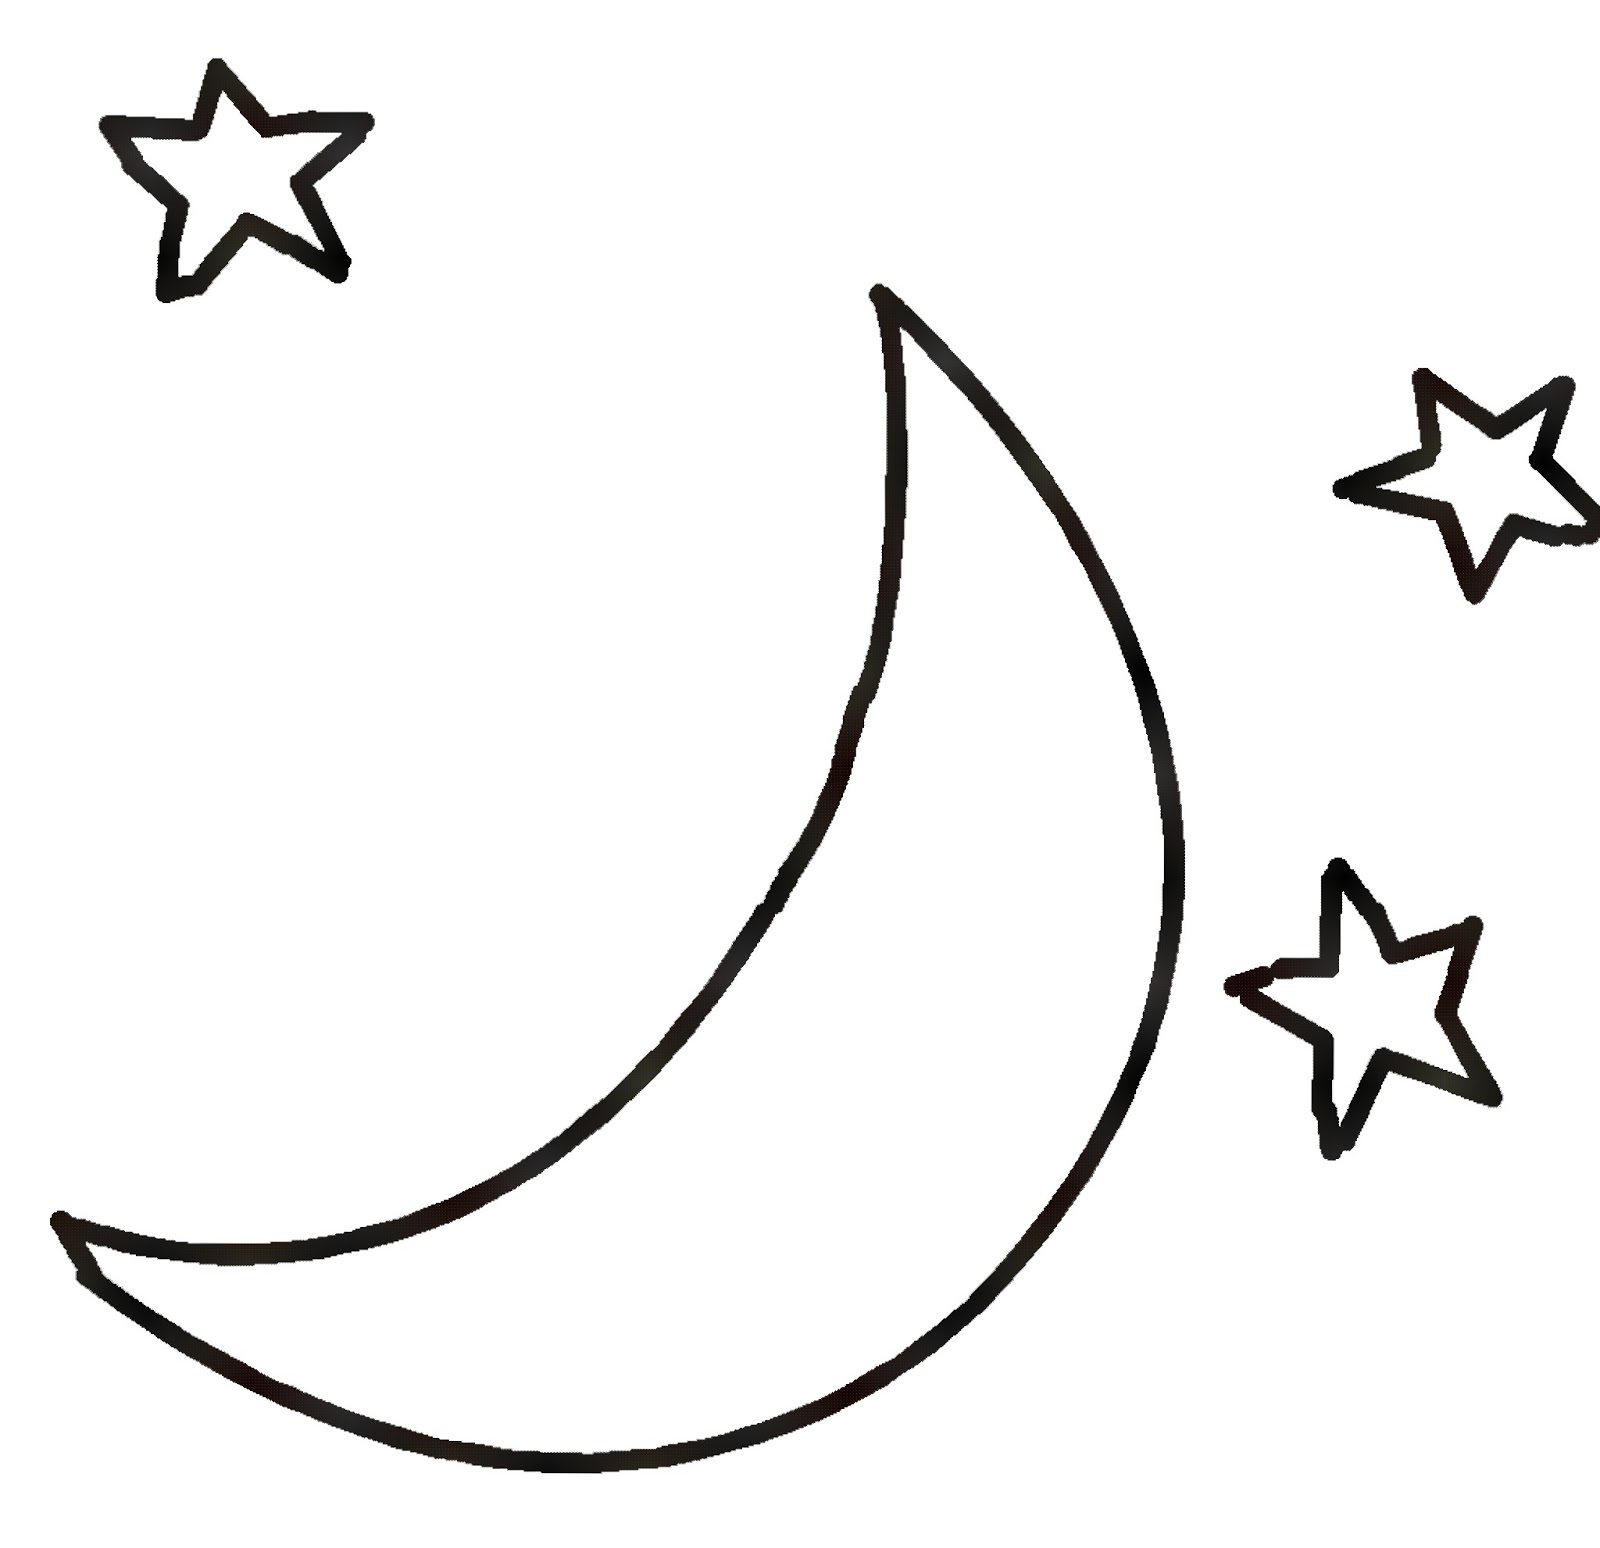 Full Moon Drawing Black And White Full Moon Clipart Black And White Free Download Best Full Moon